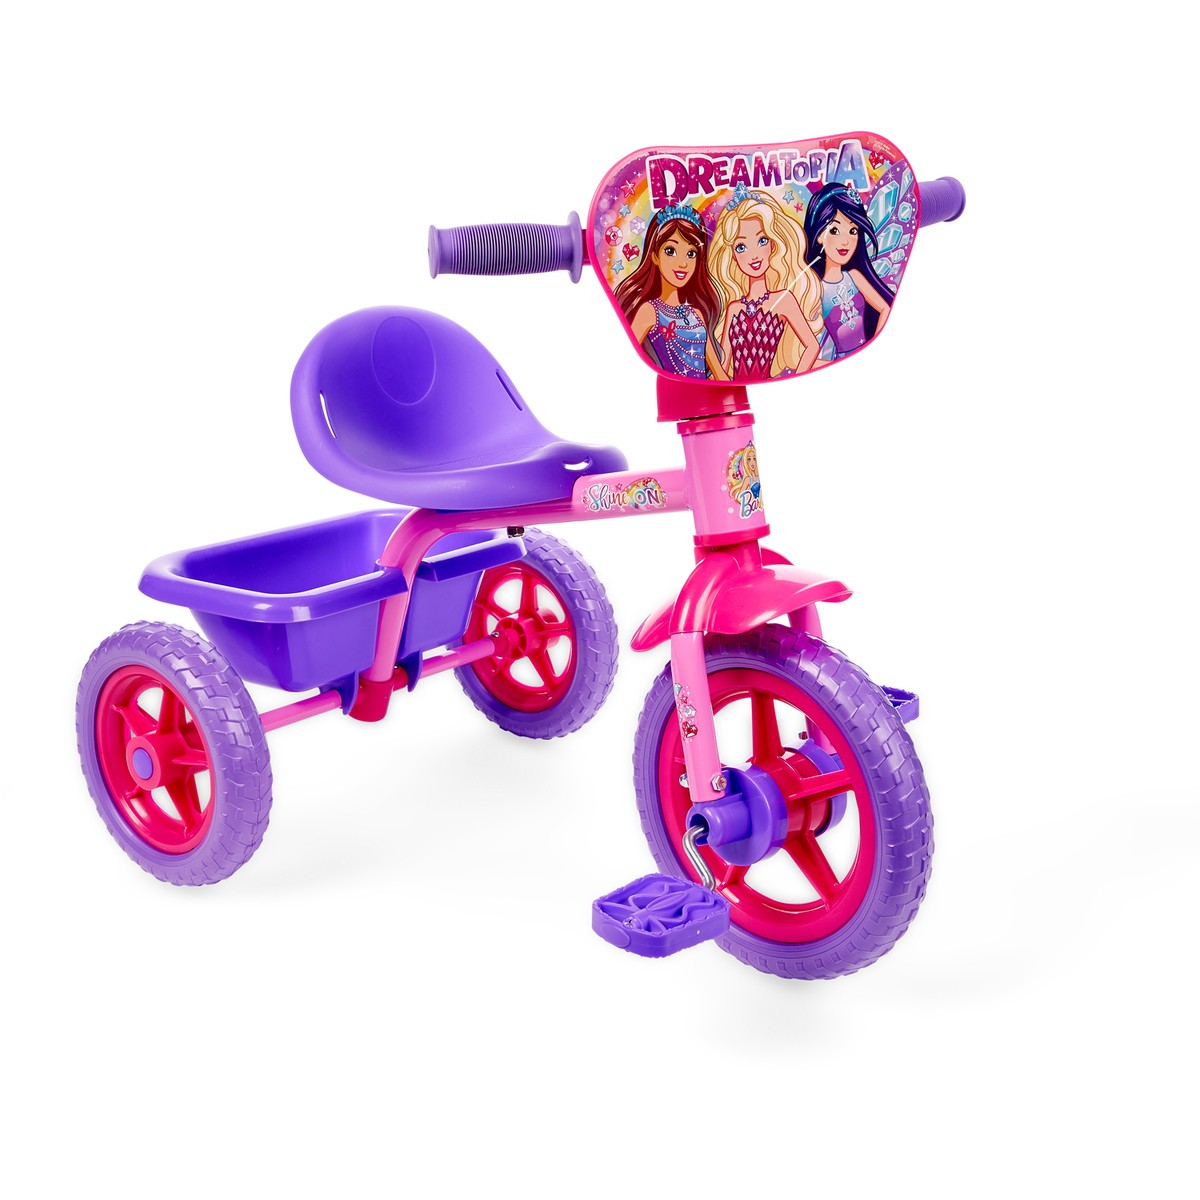 Hula Hoop Big W Ride On Toys At Big W Cessnock Tuggl Local Retail Stores Online